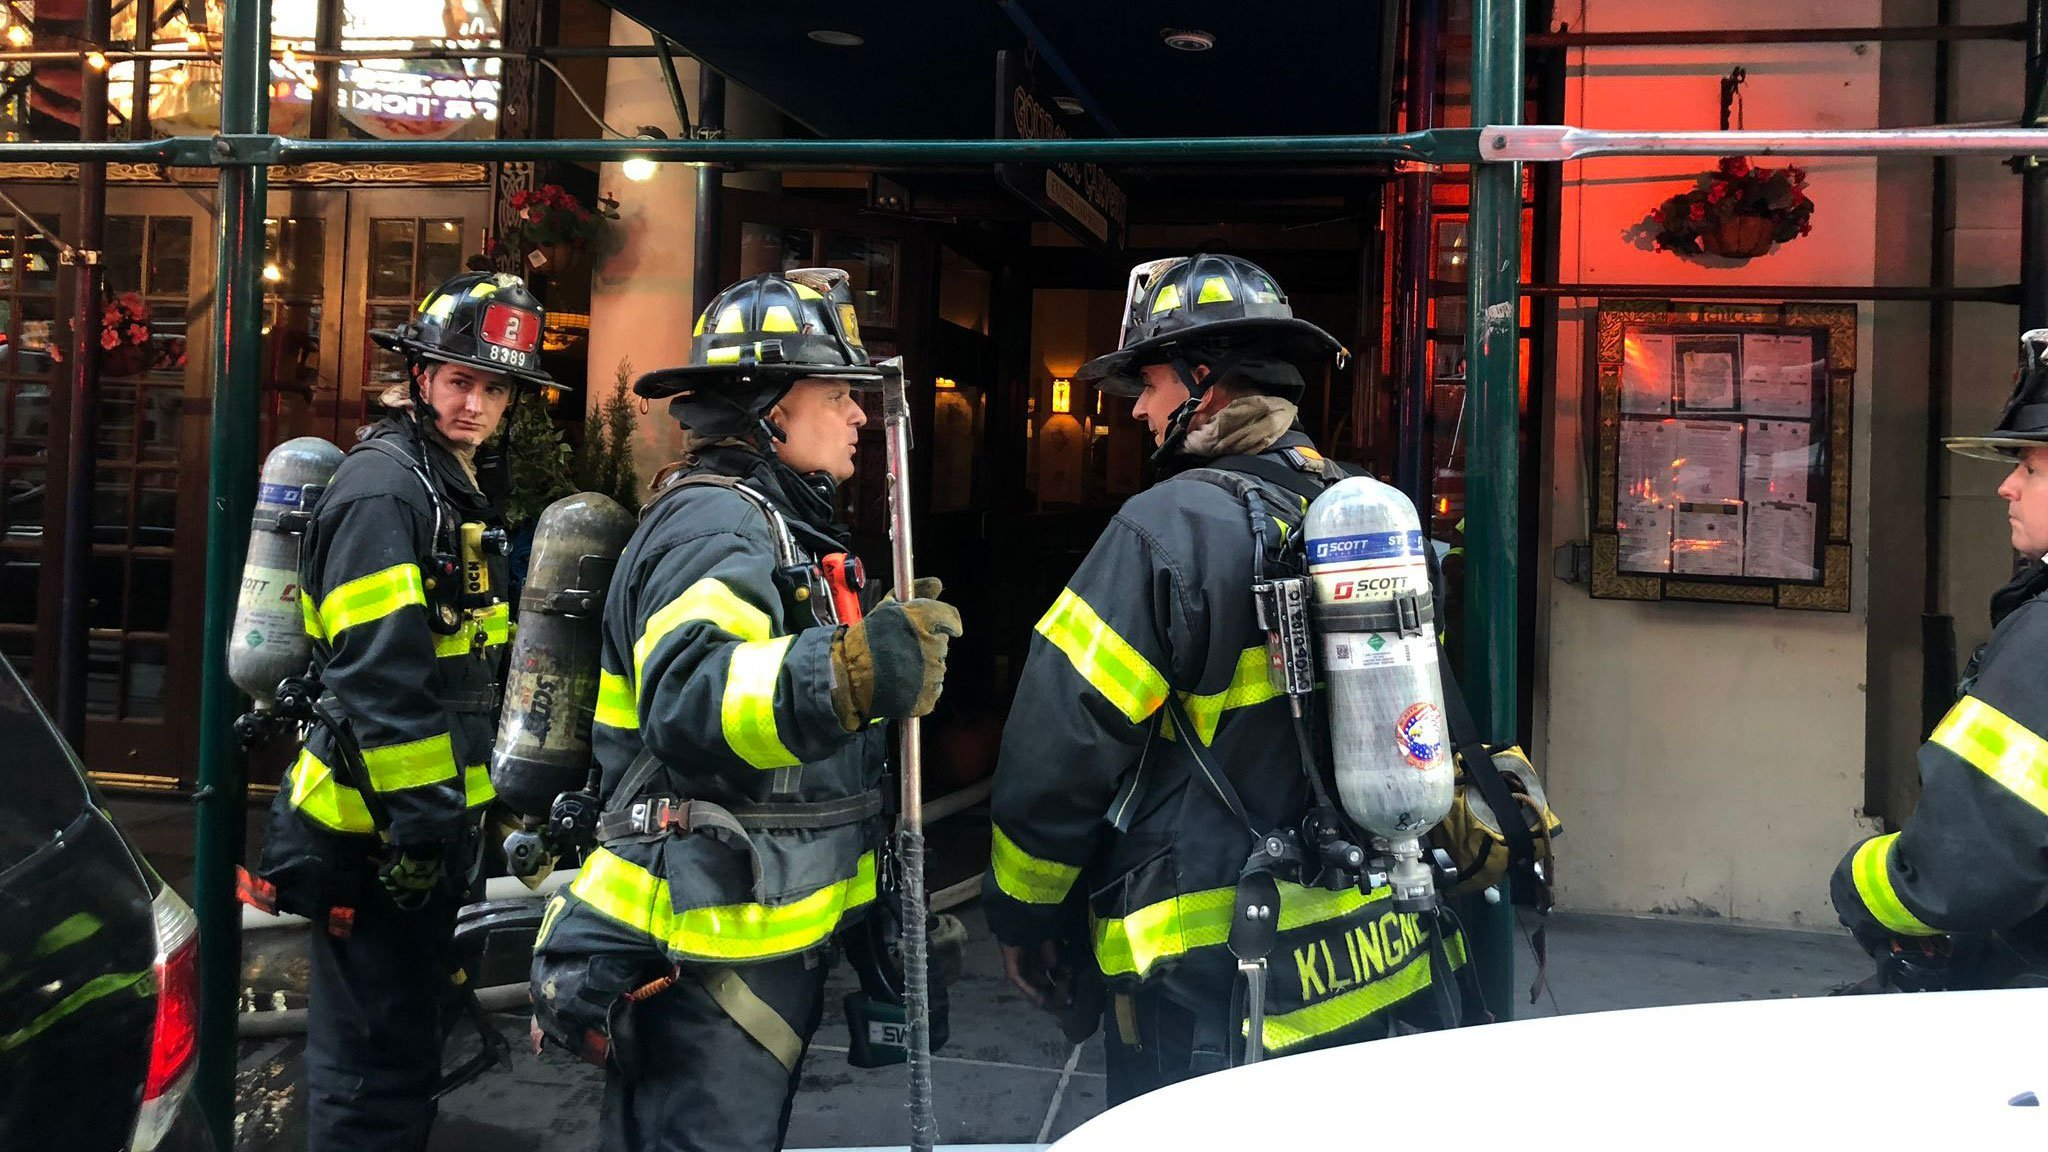 FDNY says 3 injured in fire near New York City's Times Square